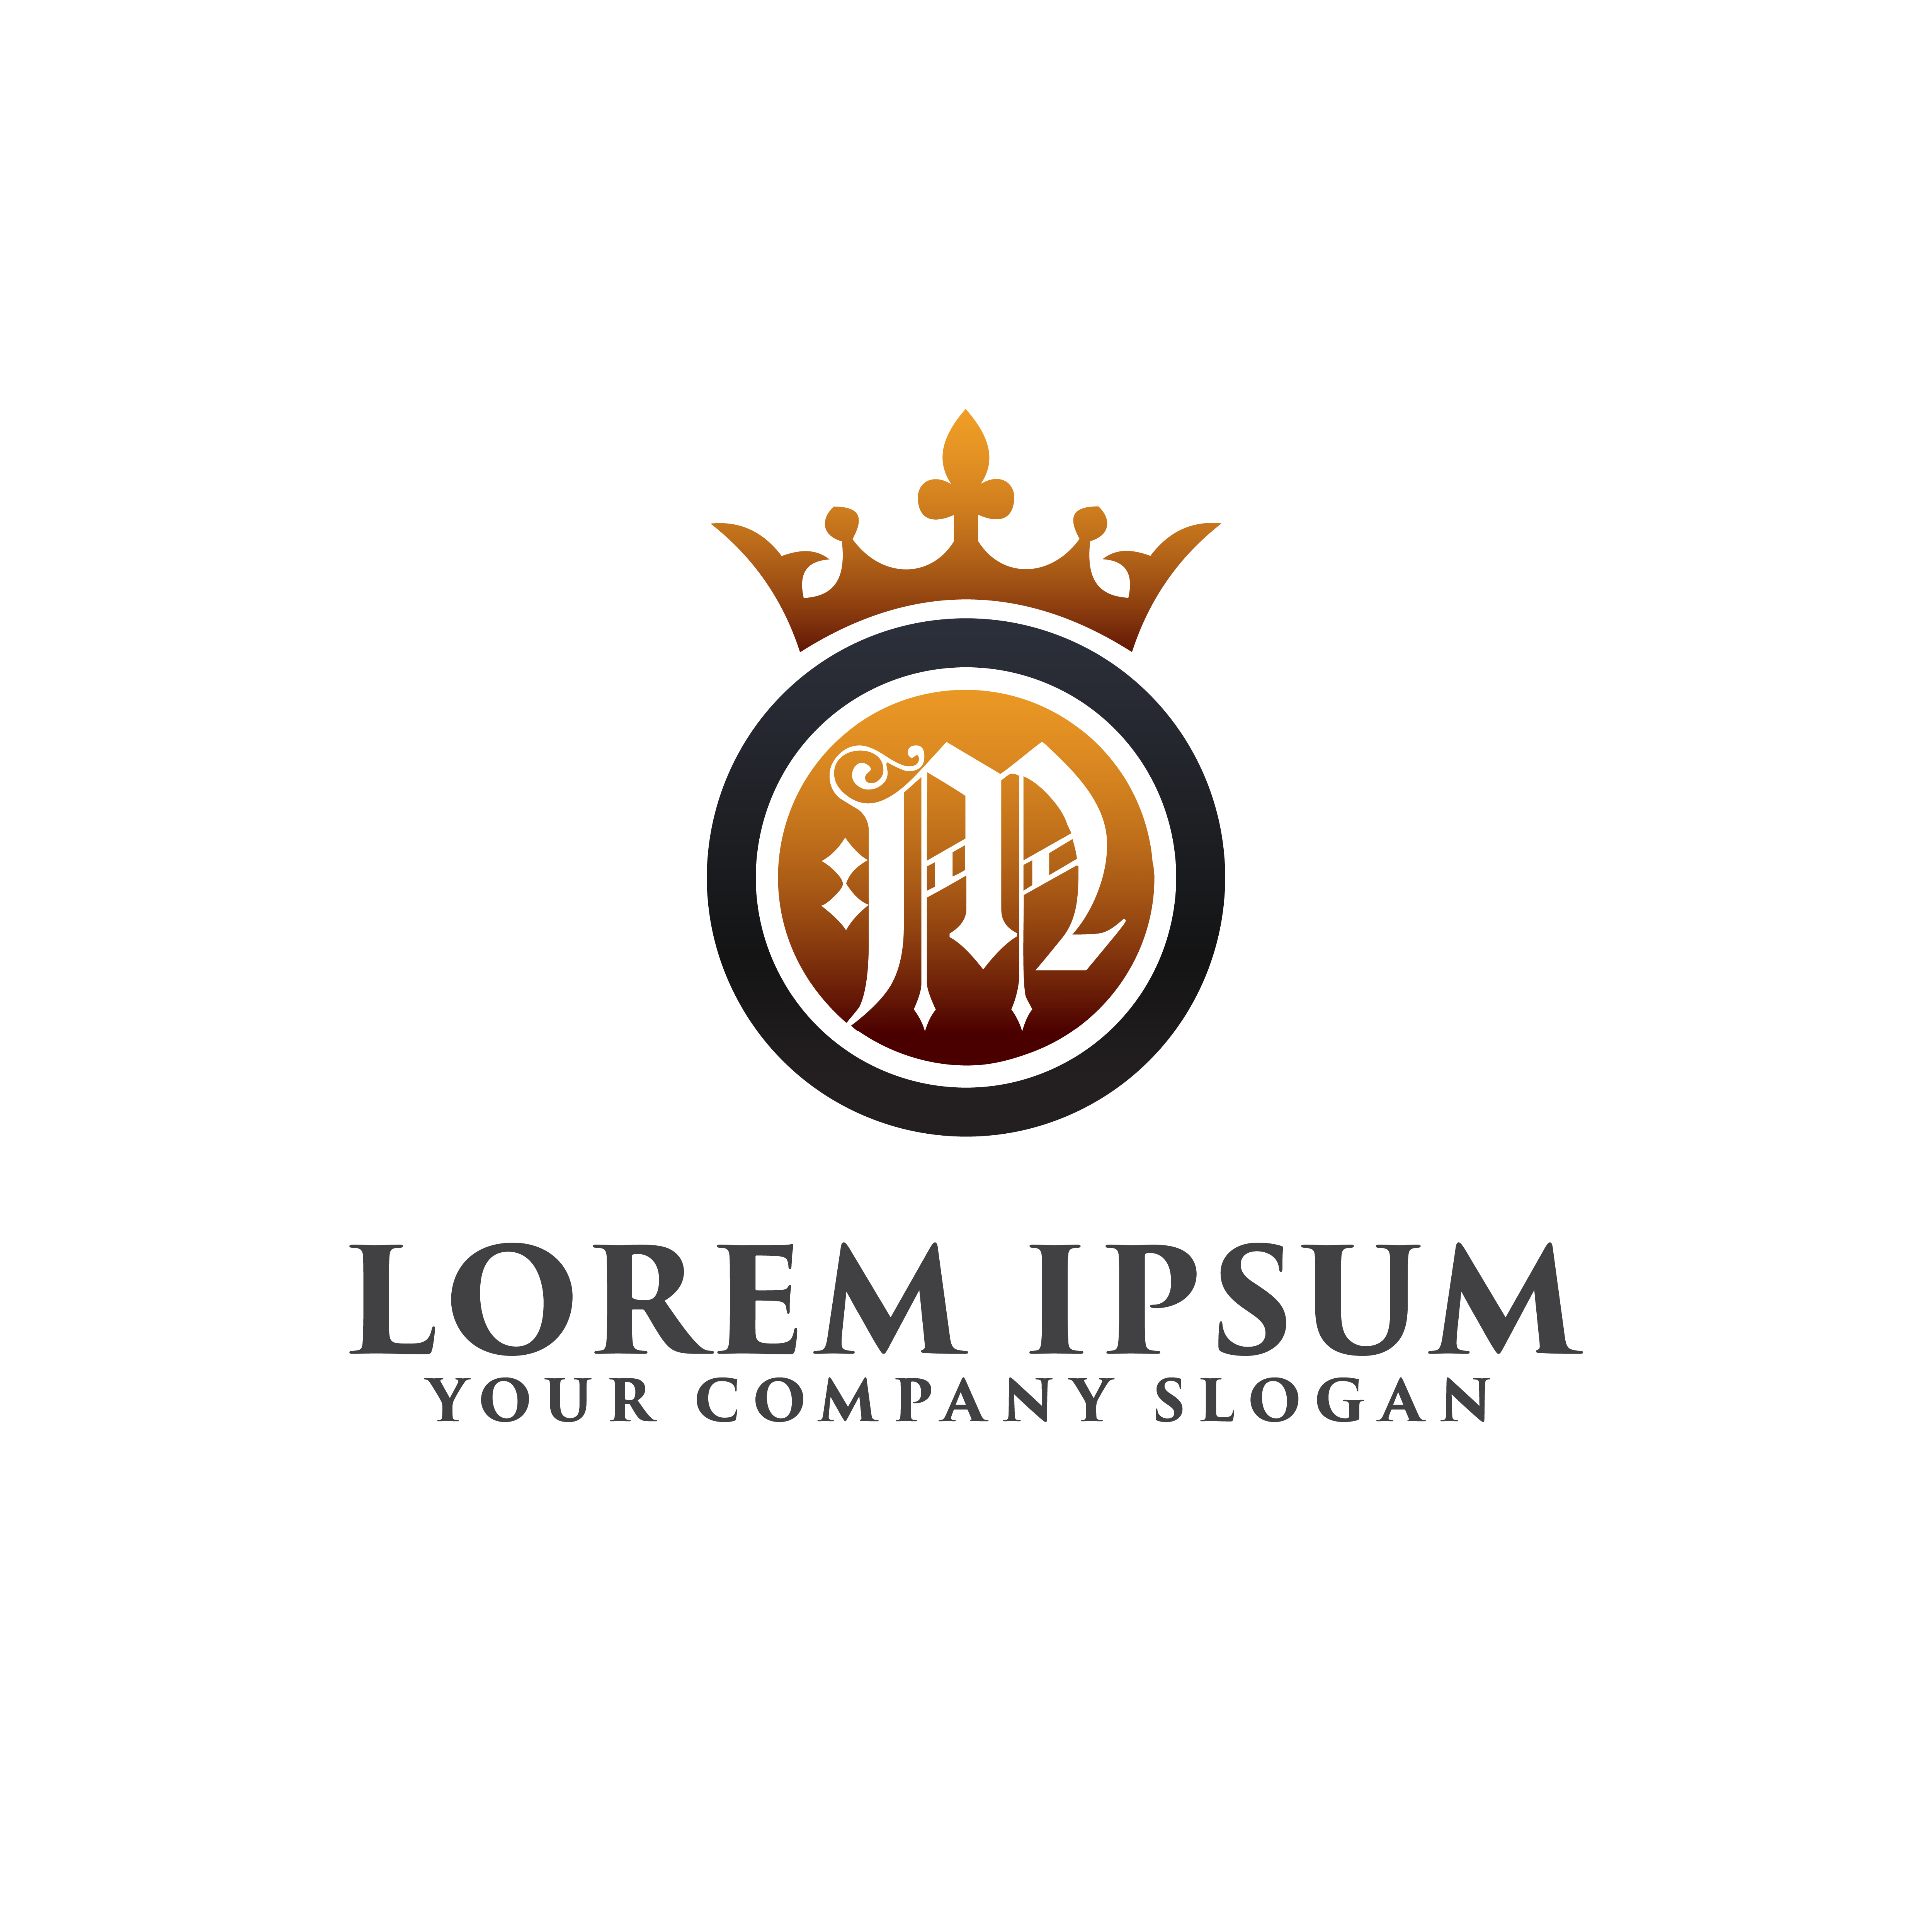 Vintage And Luxury Logo Template:  Luxury Letter M With Crown Logo Design Concept Template